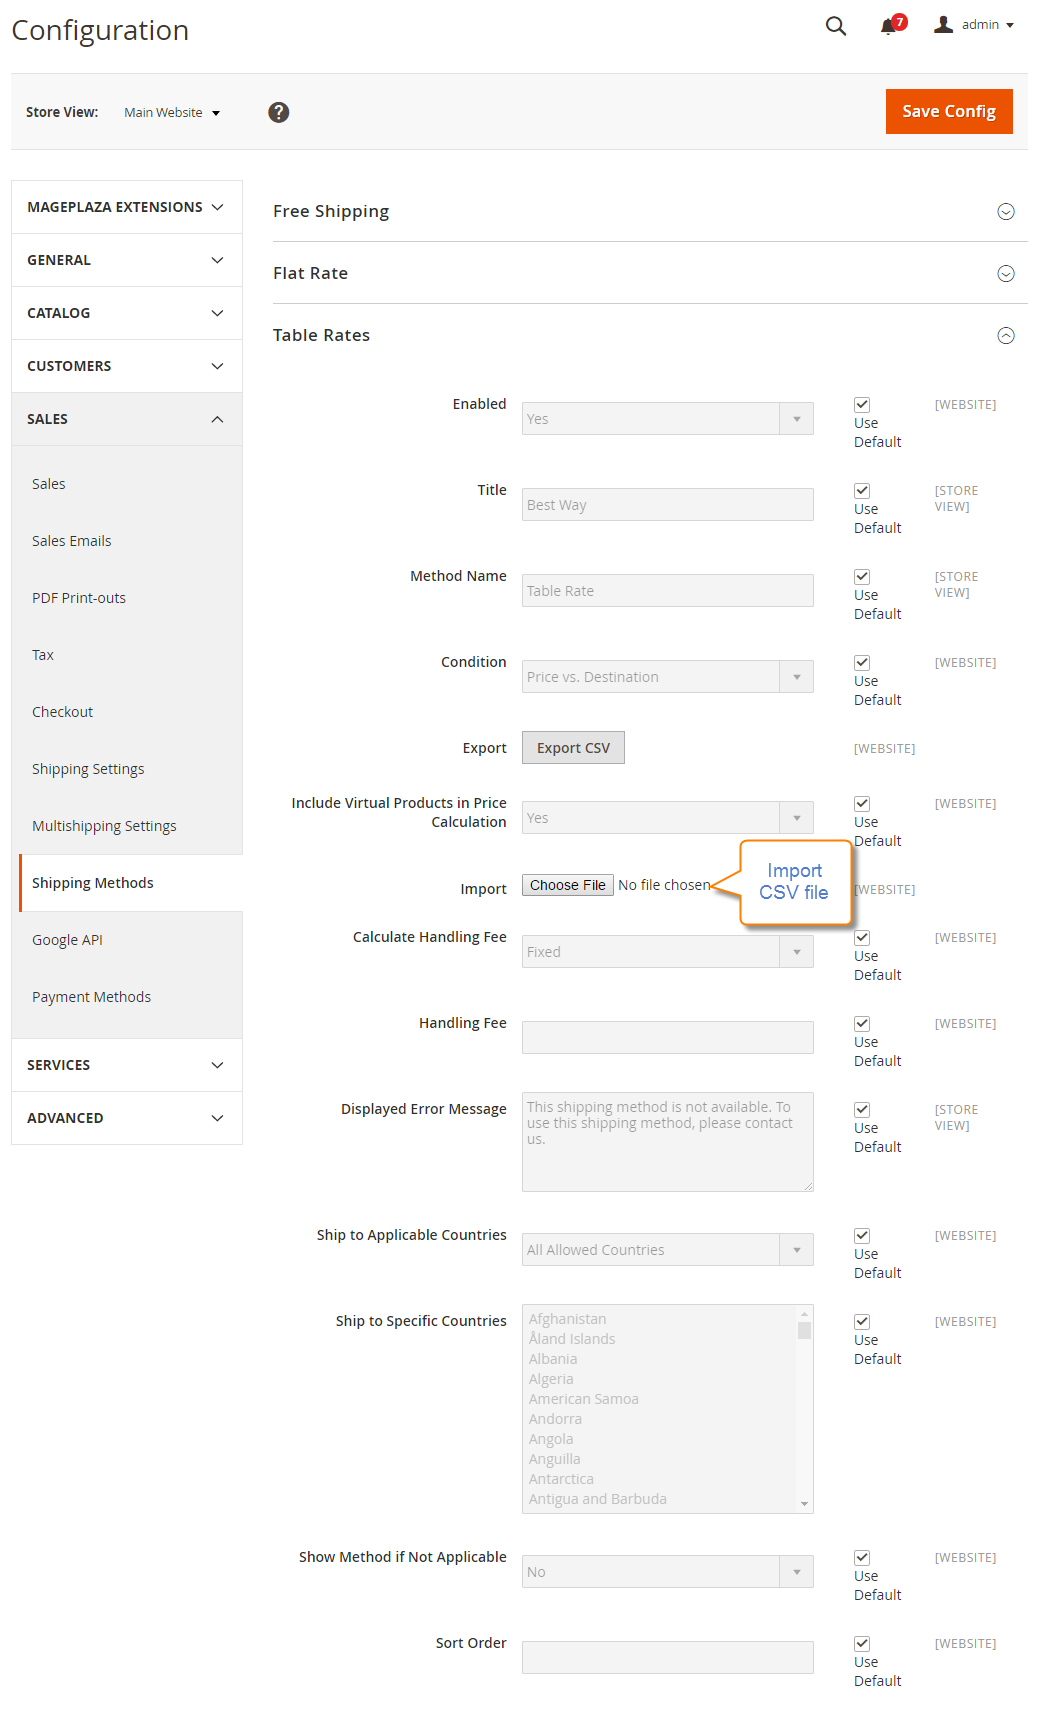 How to Configure Table Rates Shipping Method in Magento 2